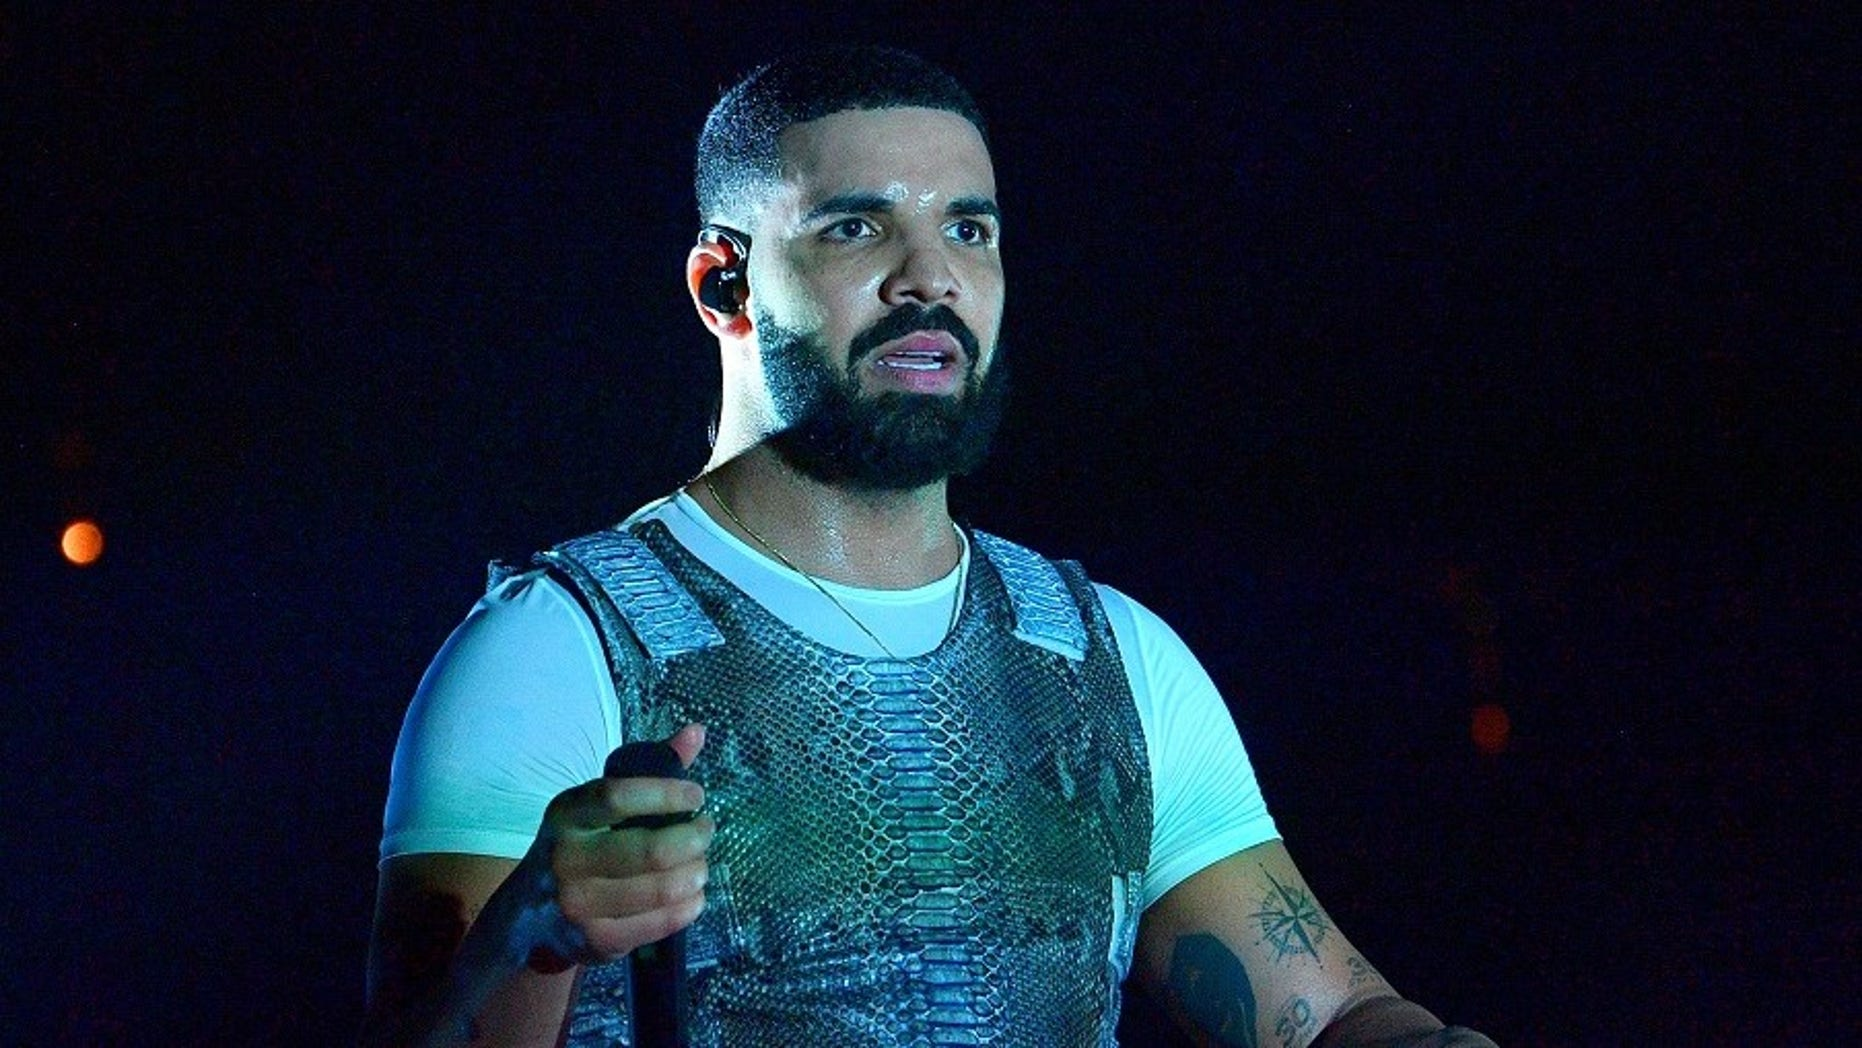 Drake received backlash over the weekend after a resurfaced video showed him kissing a 17-year-old girl onstage.